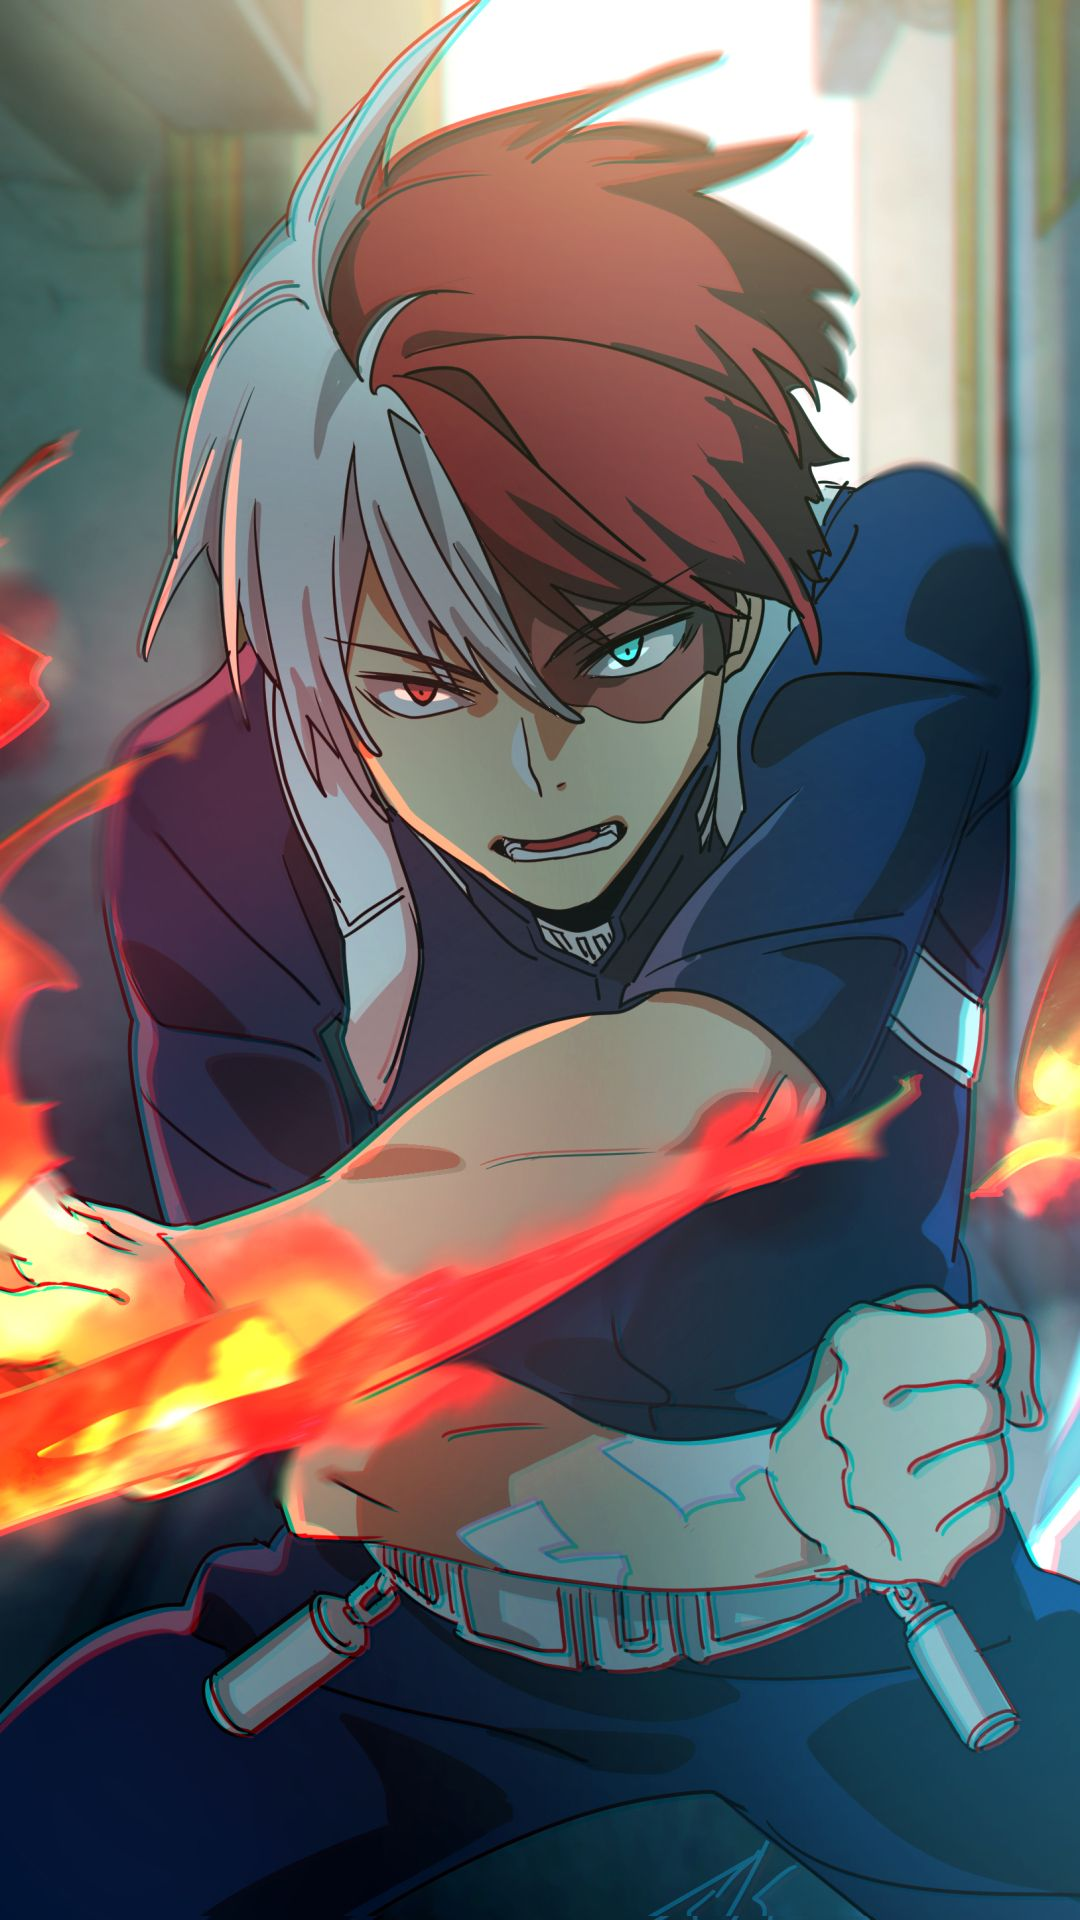 Todoroki Shouto, Arte mangá, Personagens de anime